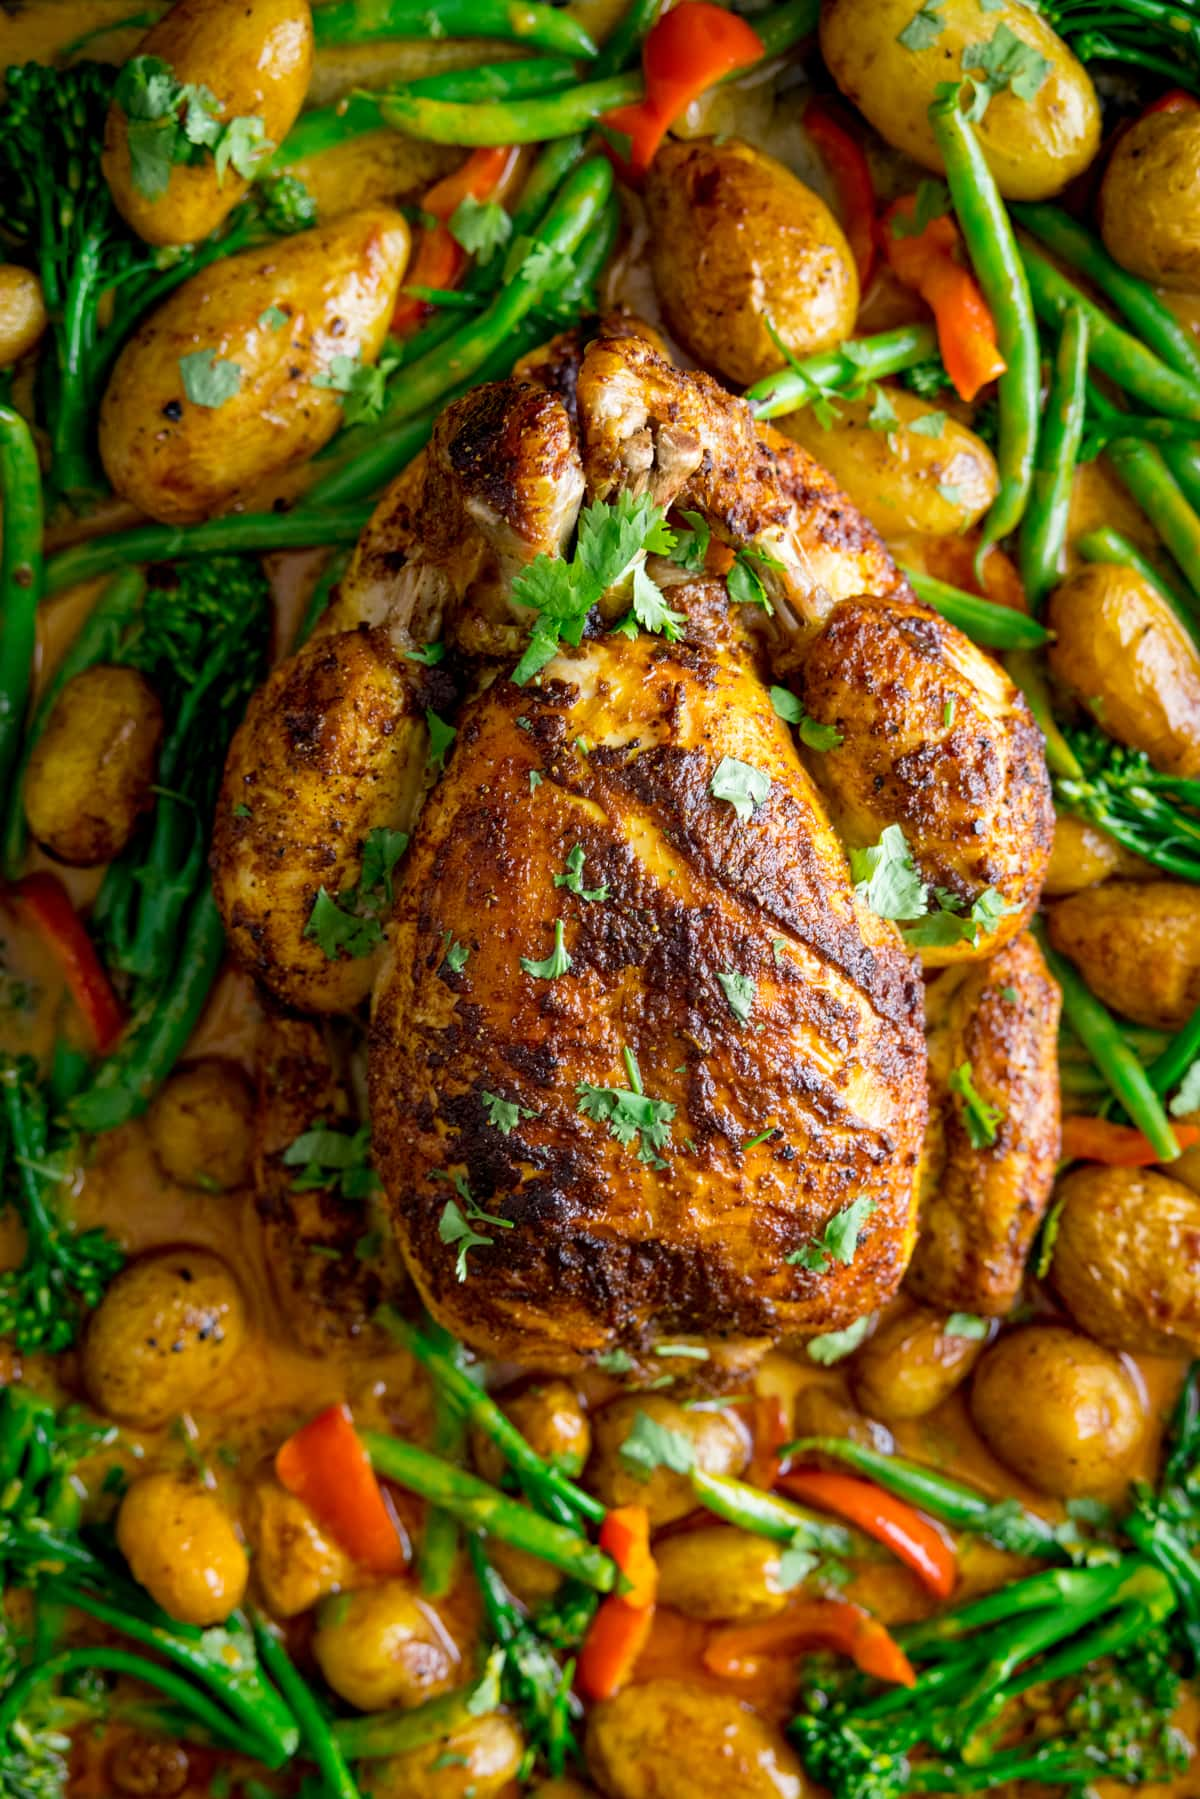 Overhead of a whole roast chicken in a baking tray with vegetables and curry sauce